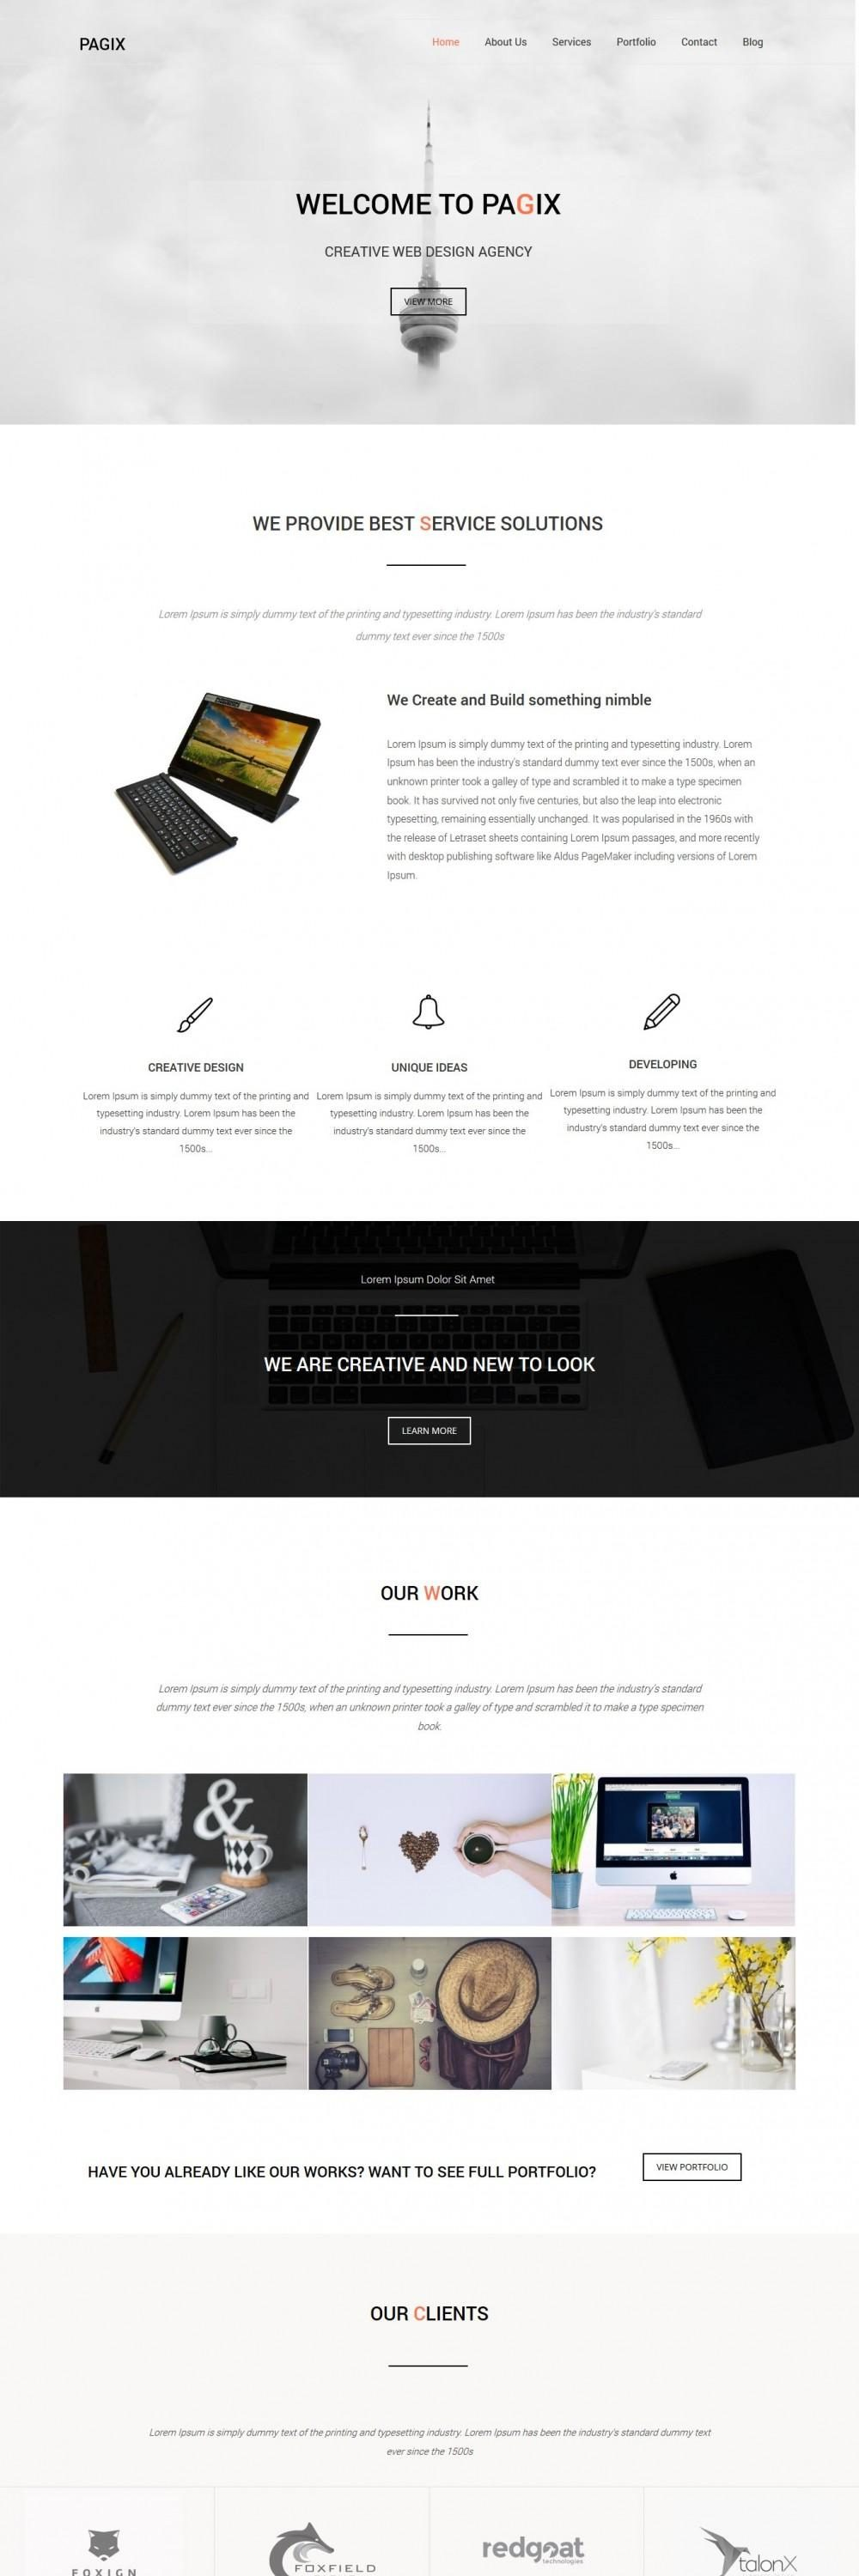 pagix web design studio blogger template